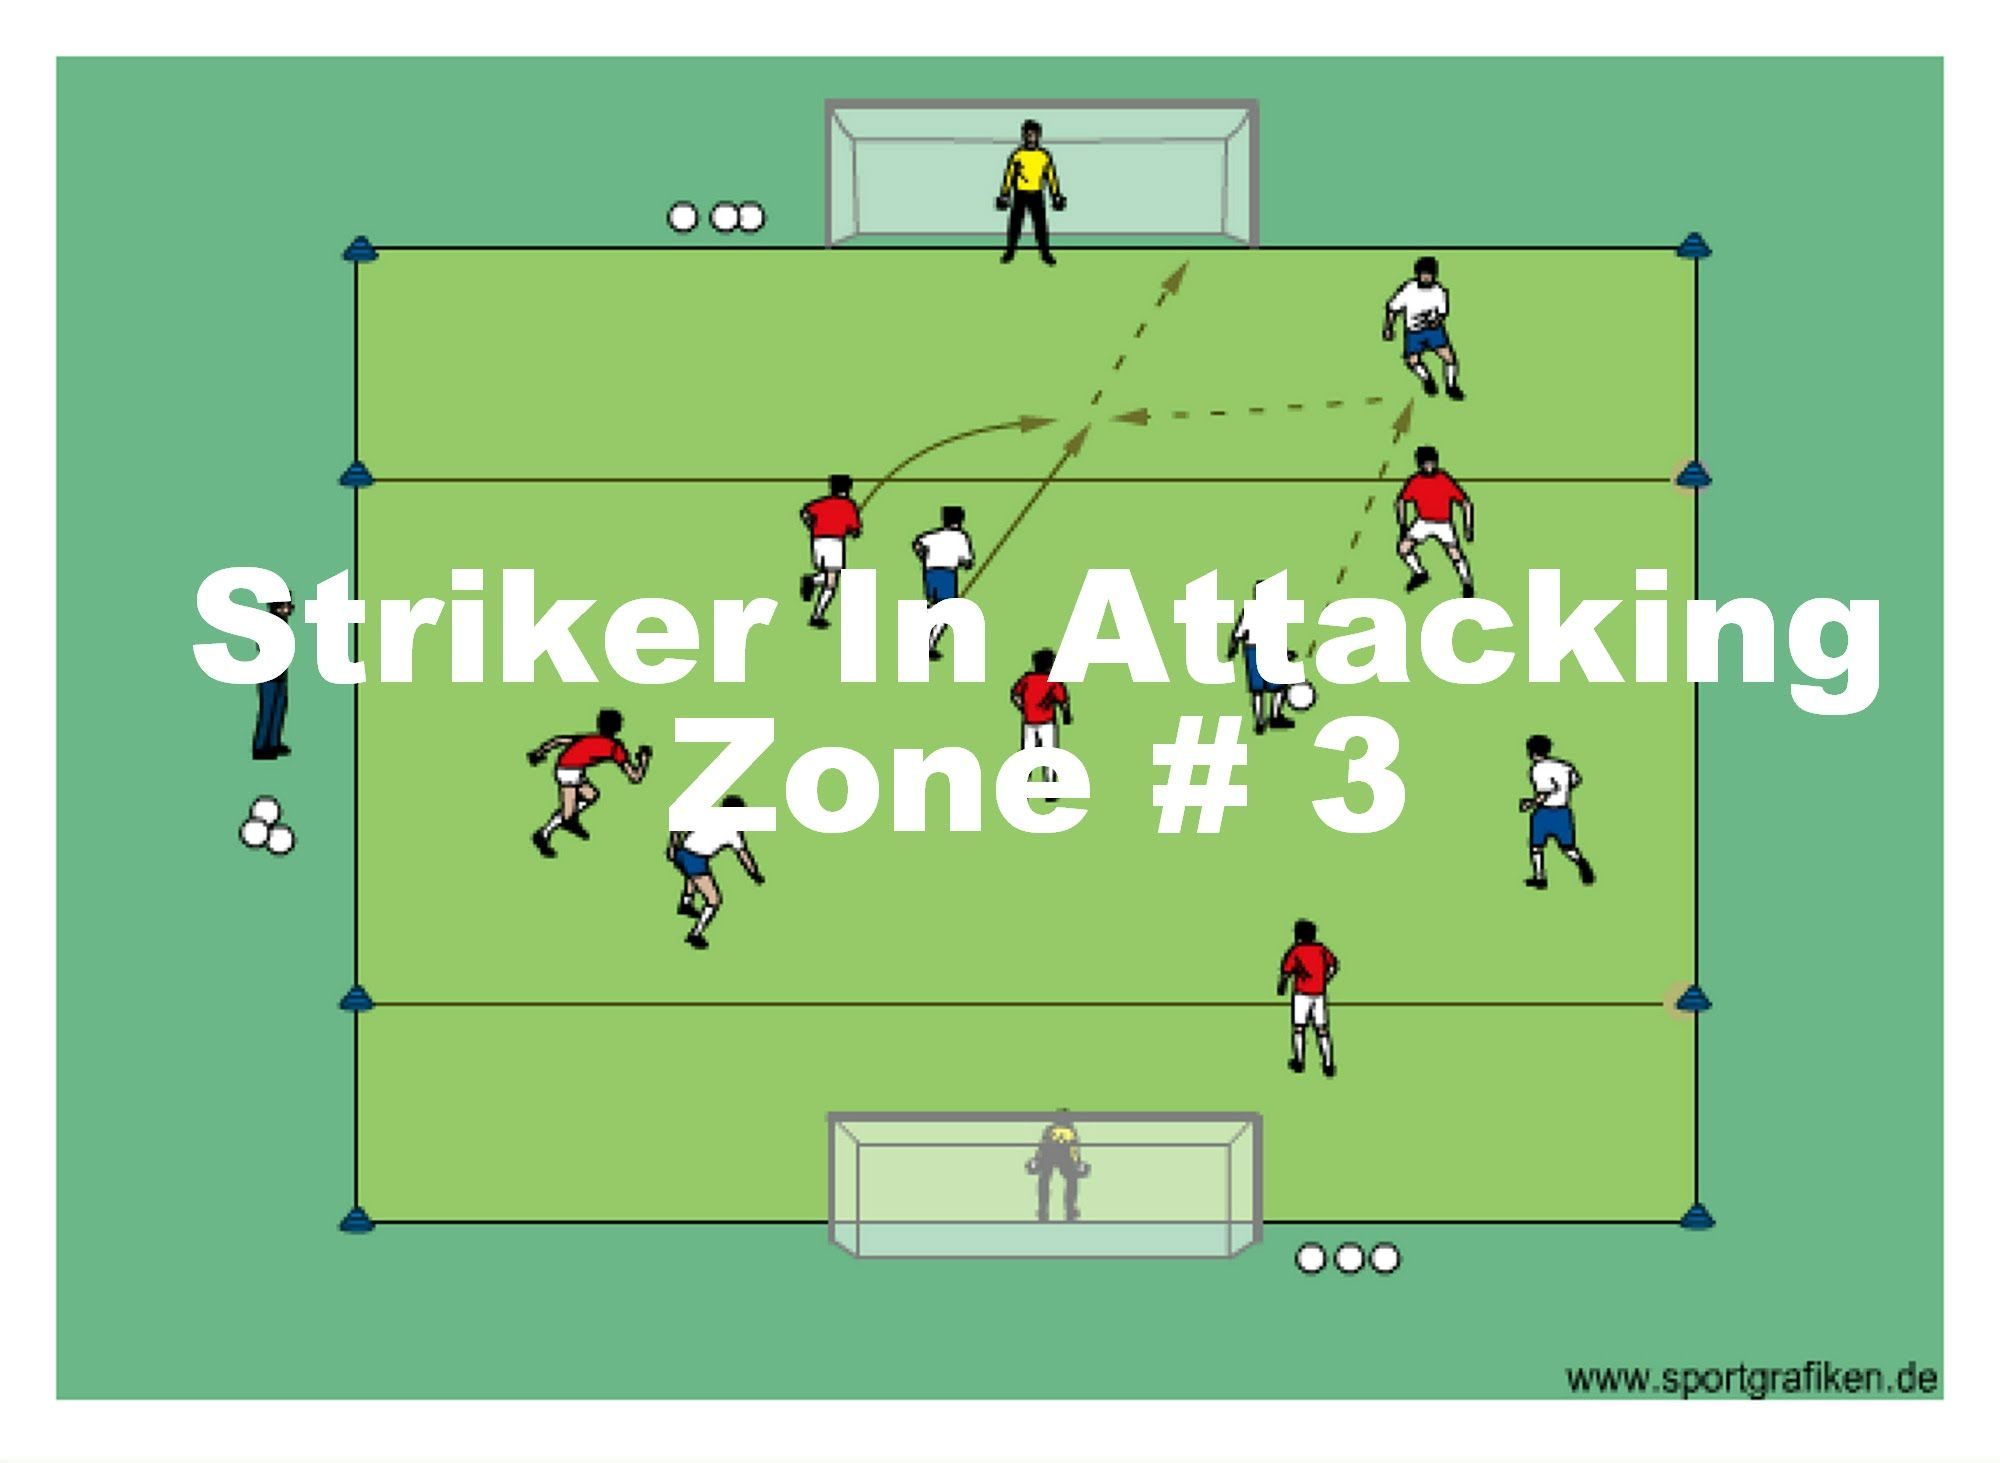 Striker In Attacking Zone 3 Print Download This Drill Basic Information Age Group 8 11yrs 12 15yrs Soccer Drills Soccer Training Soccer Training Drills